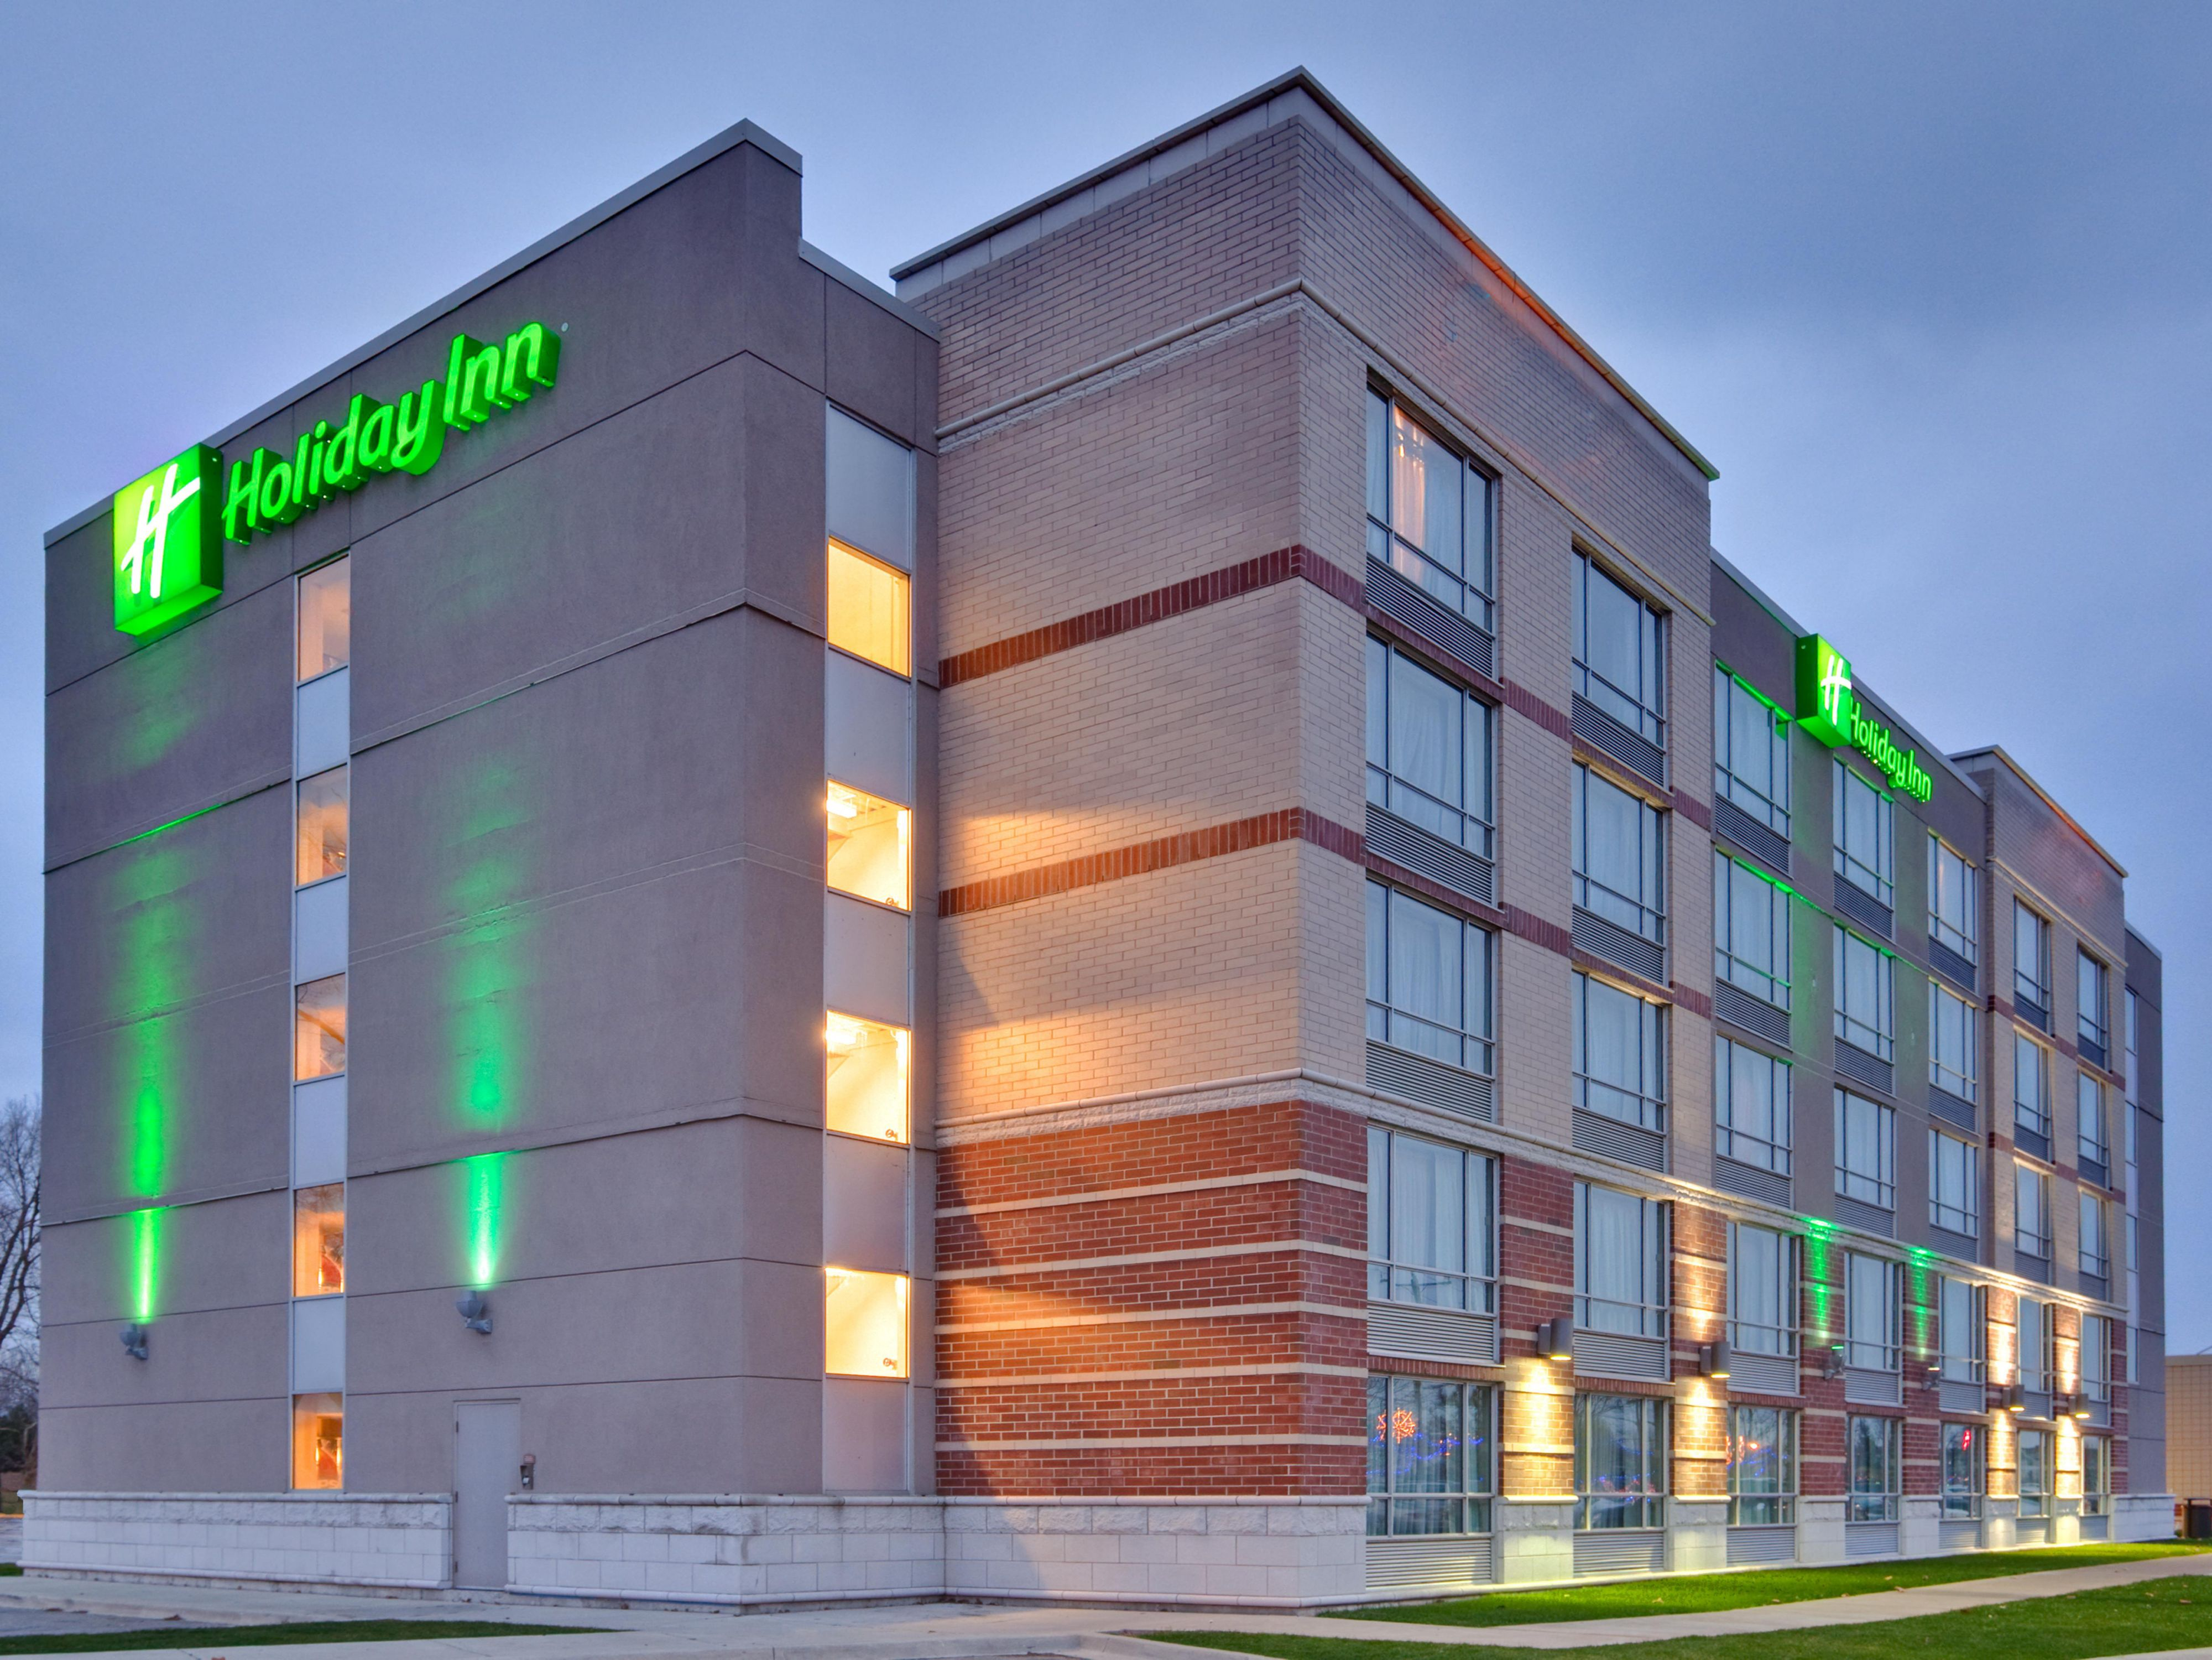 HI Sarnia Hotel is located at the foot of the Bluewater Bridges